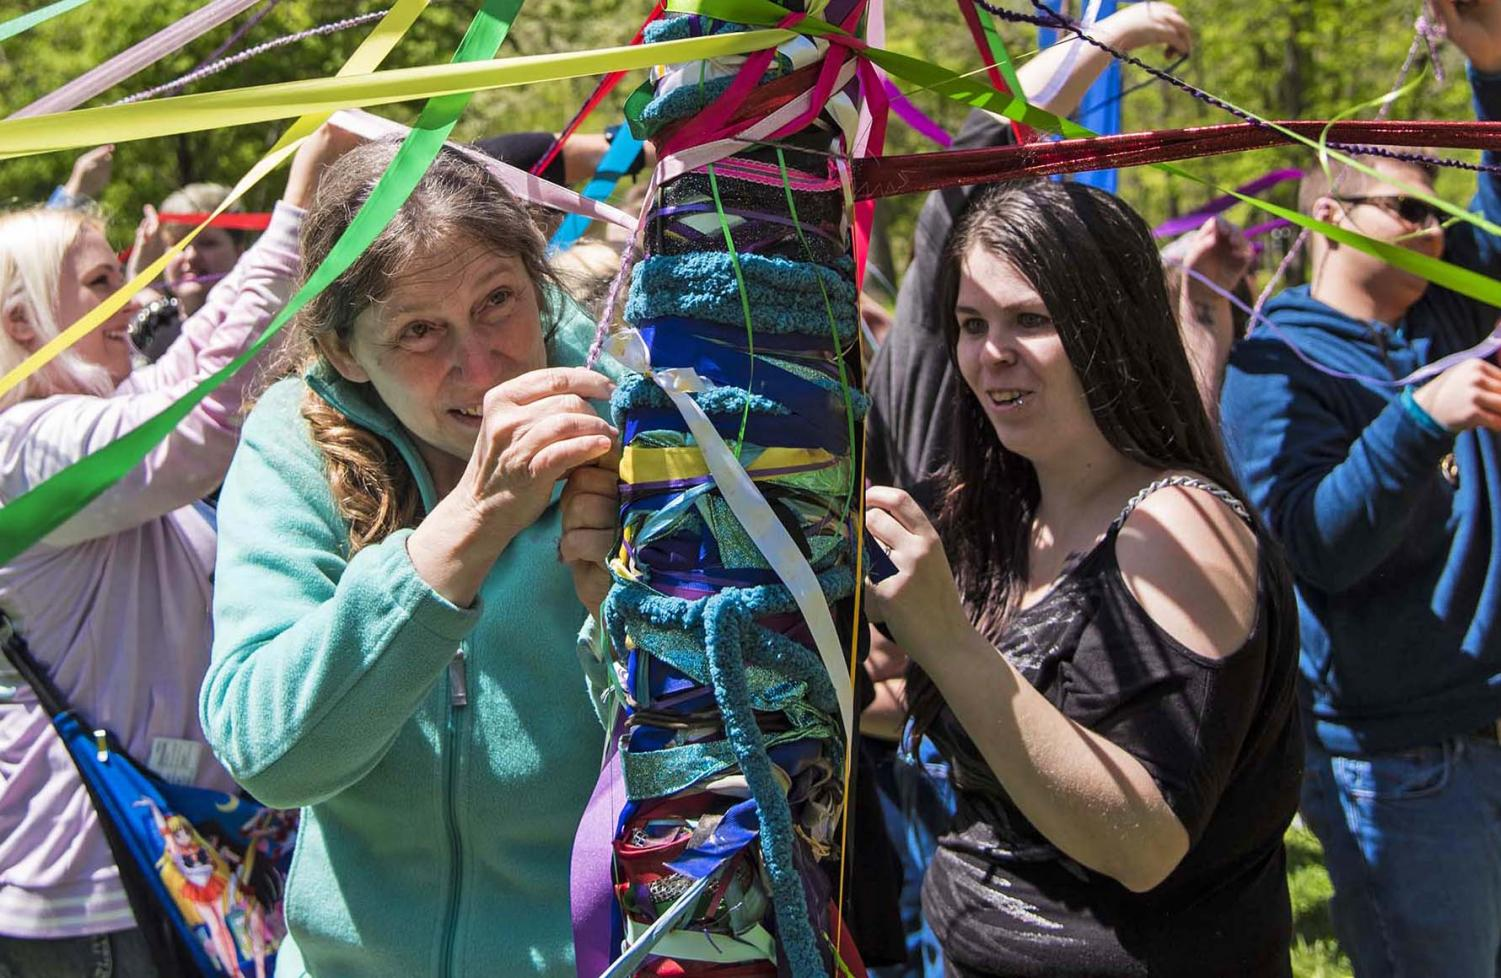 Everyone+gathers+around+the+Maypole+to+intertwine+their+ribbon+for+the+annual+SIPA+Beltane+Ritual+at+Giant+City+State+Park+April+28%2C+2019.+